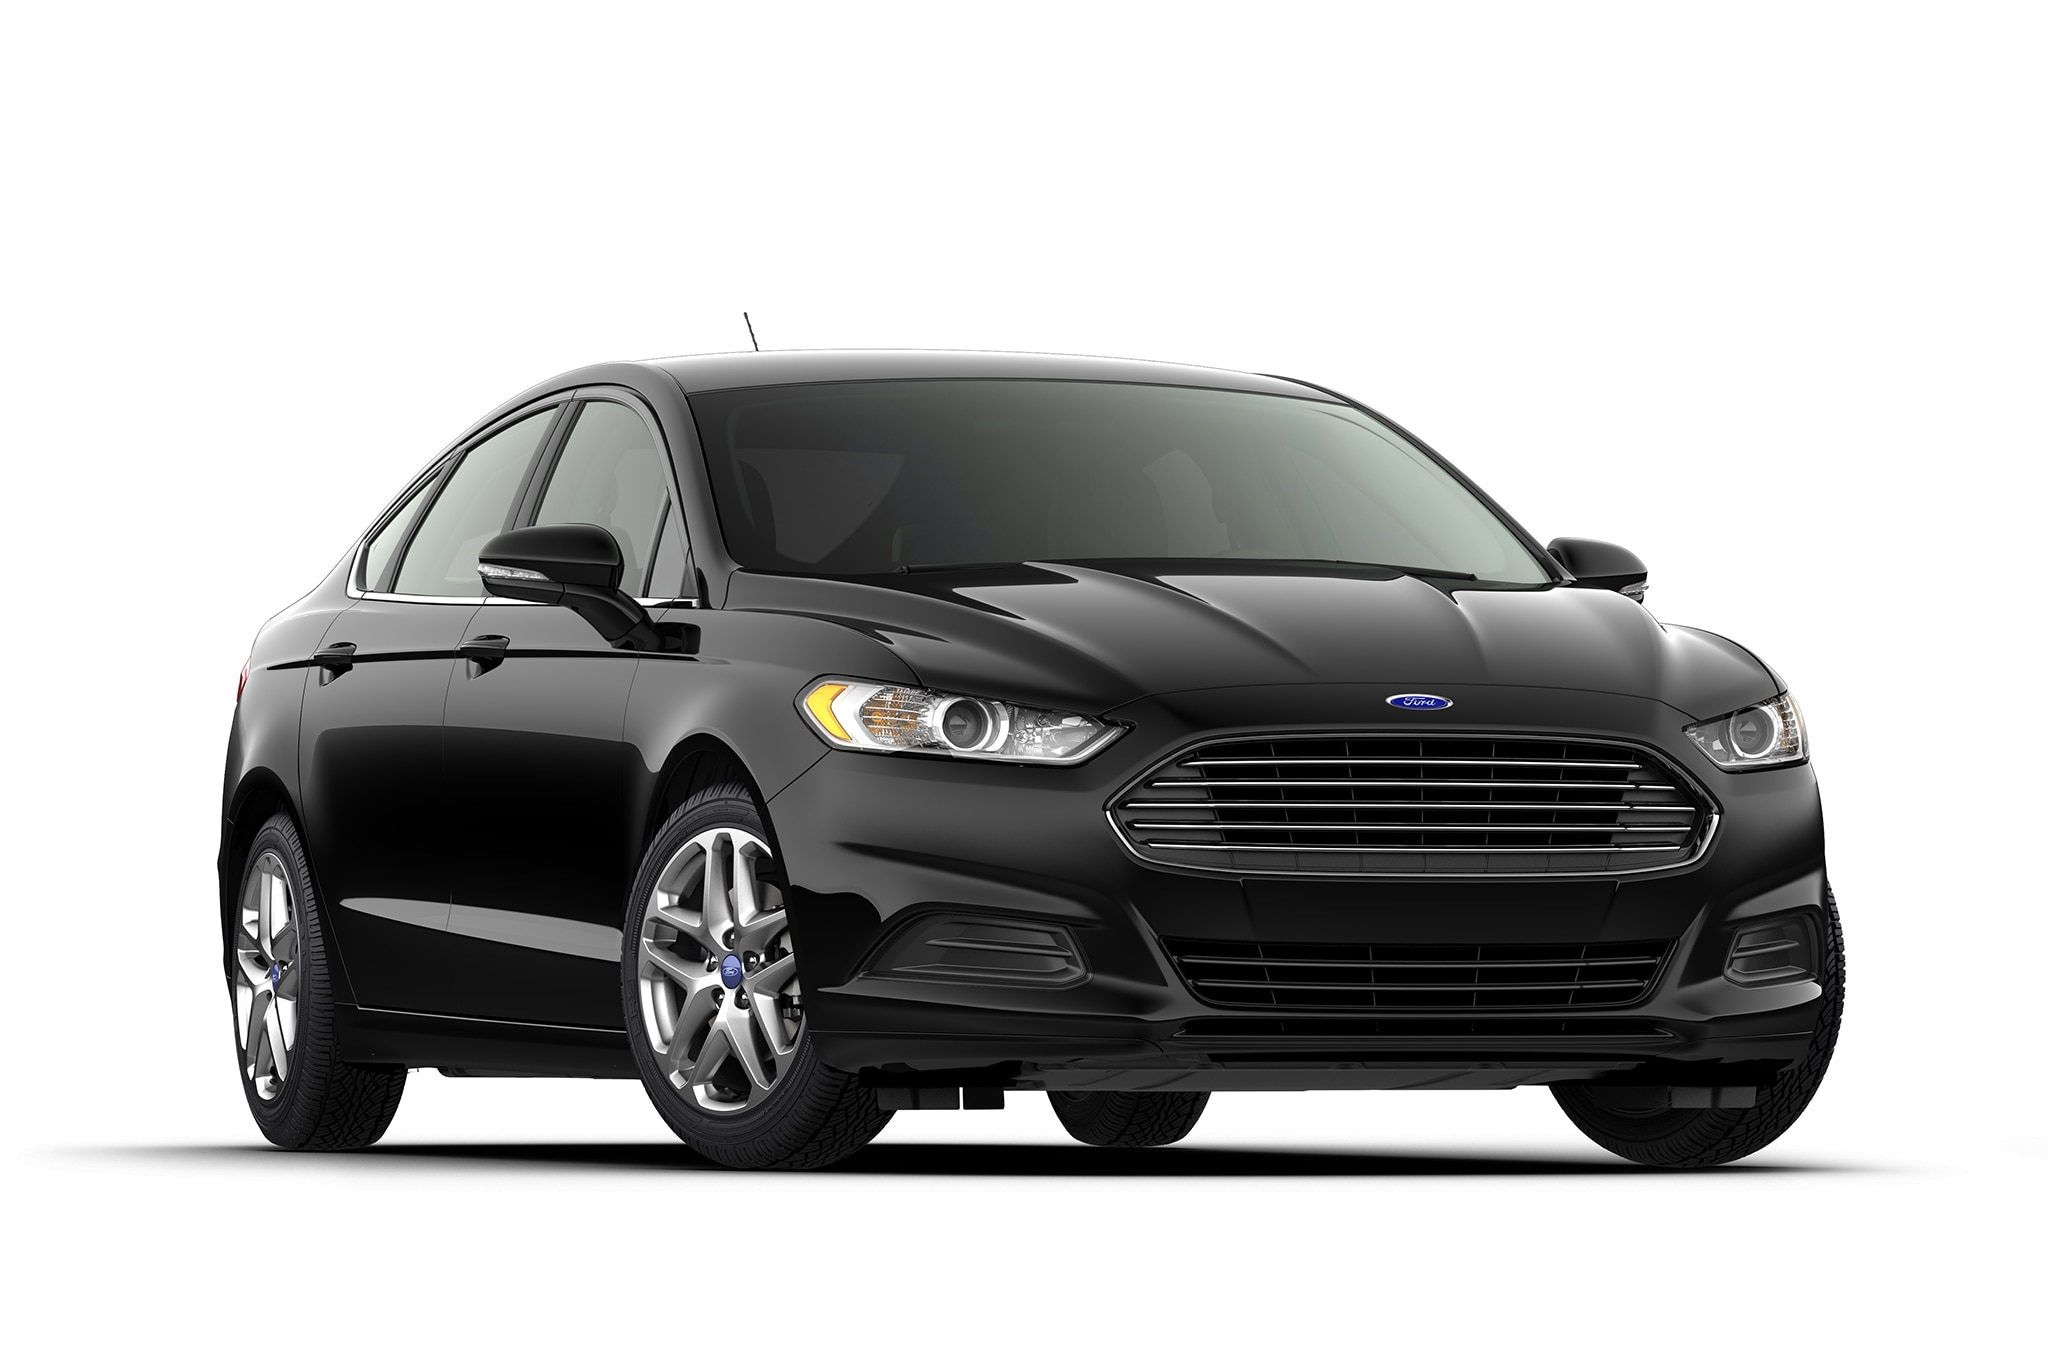 2015 ford fusion drops 1 6l ecoboost engine manual. Black Bedroom Furniture Sets. Home Design Ideas